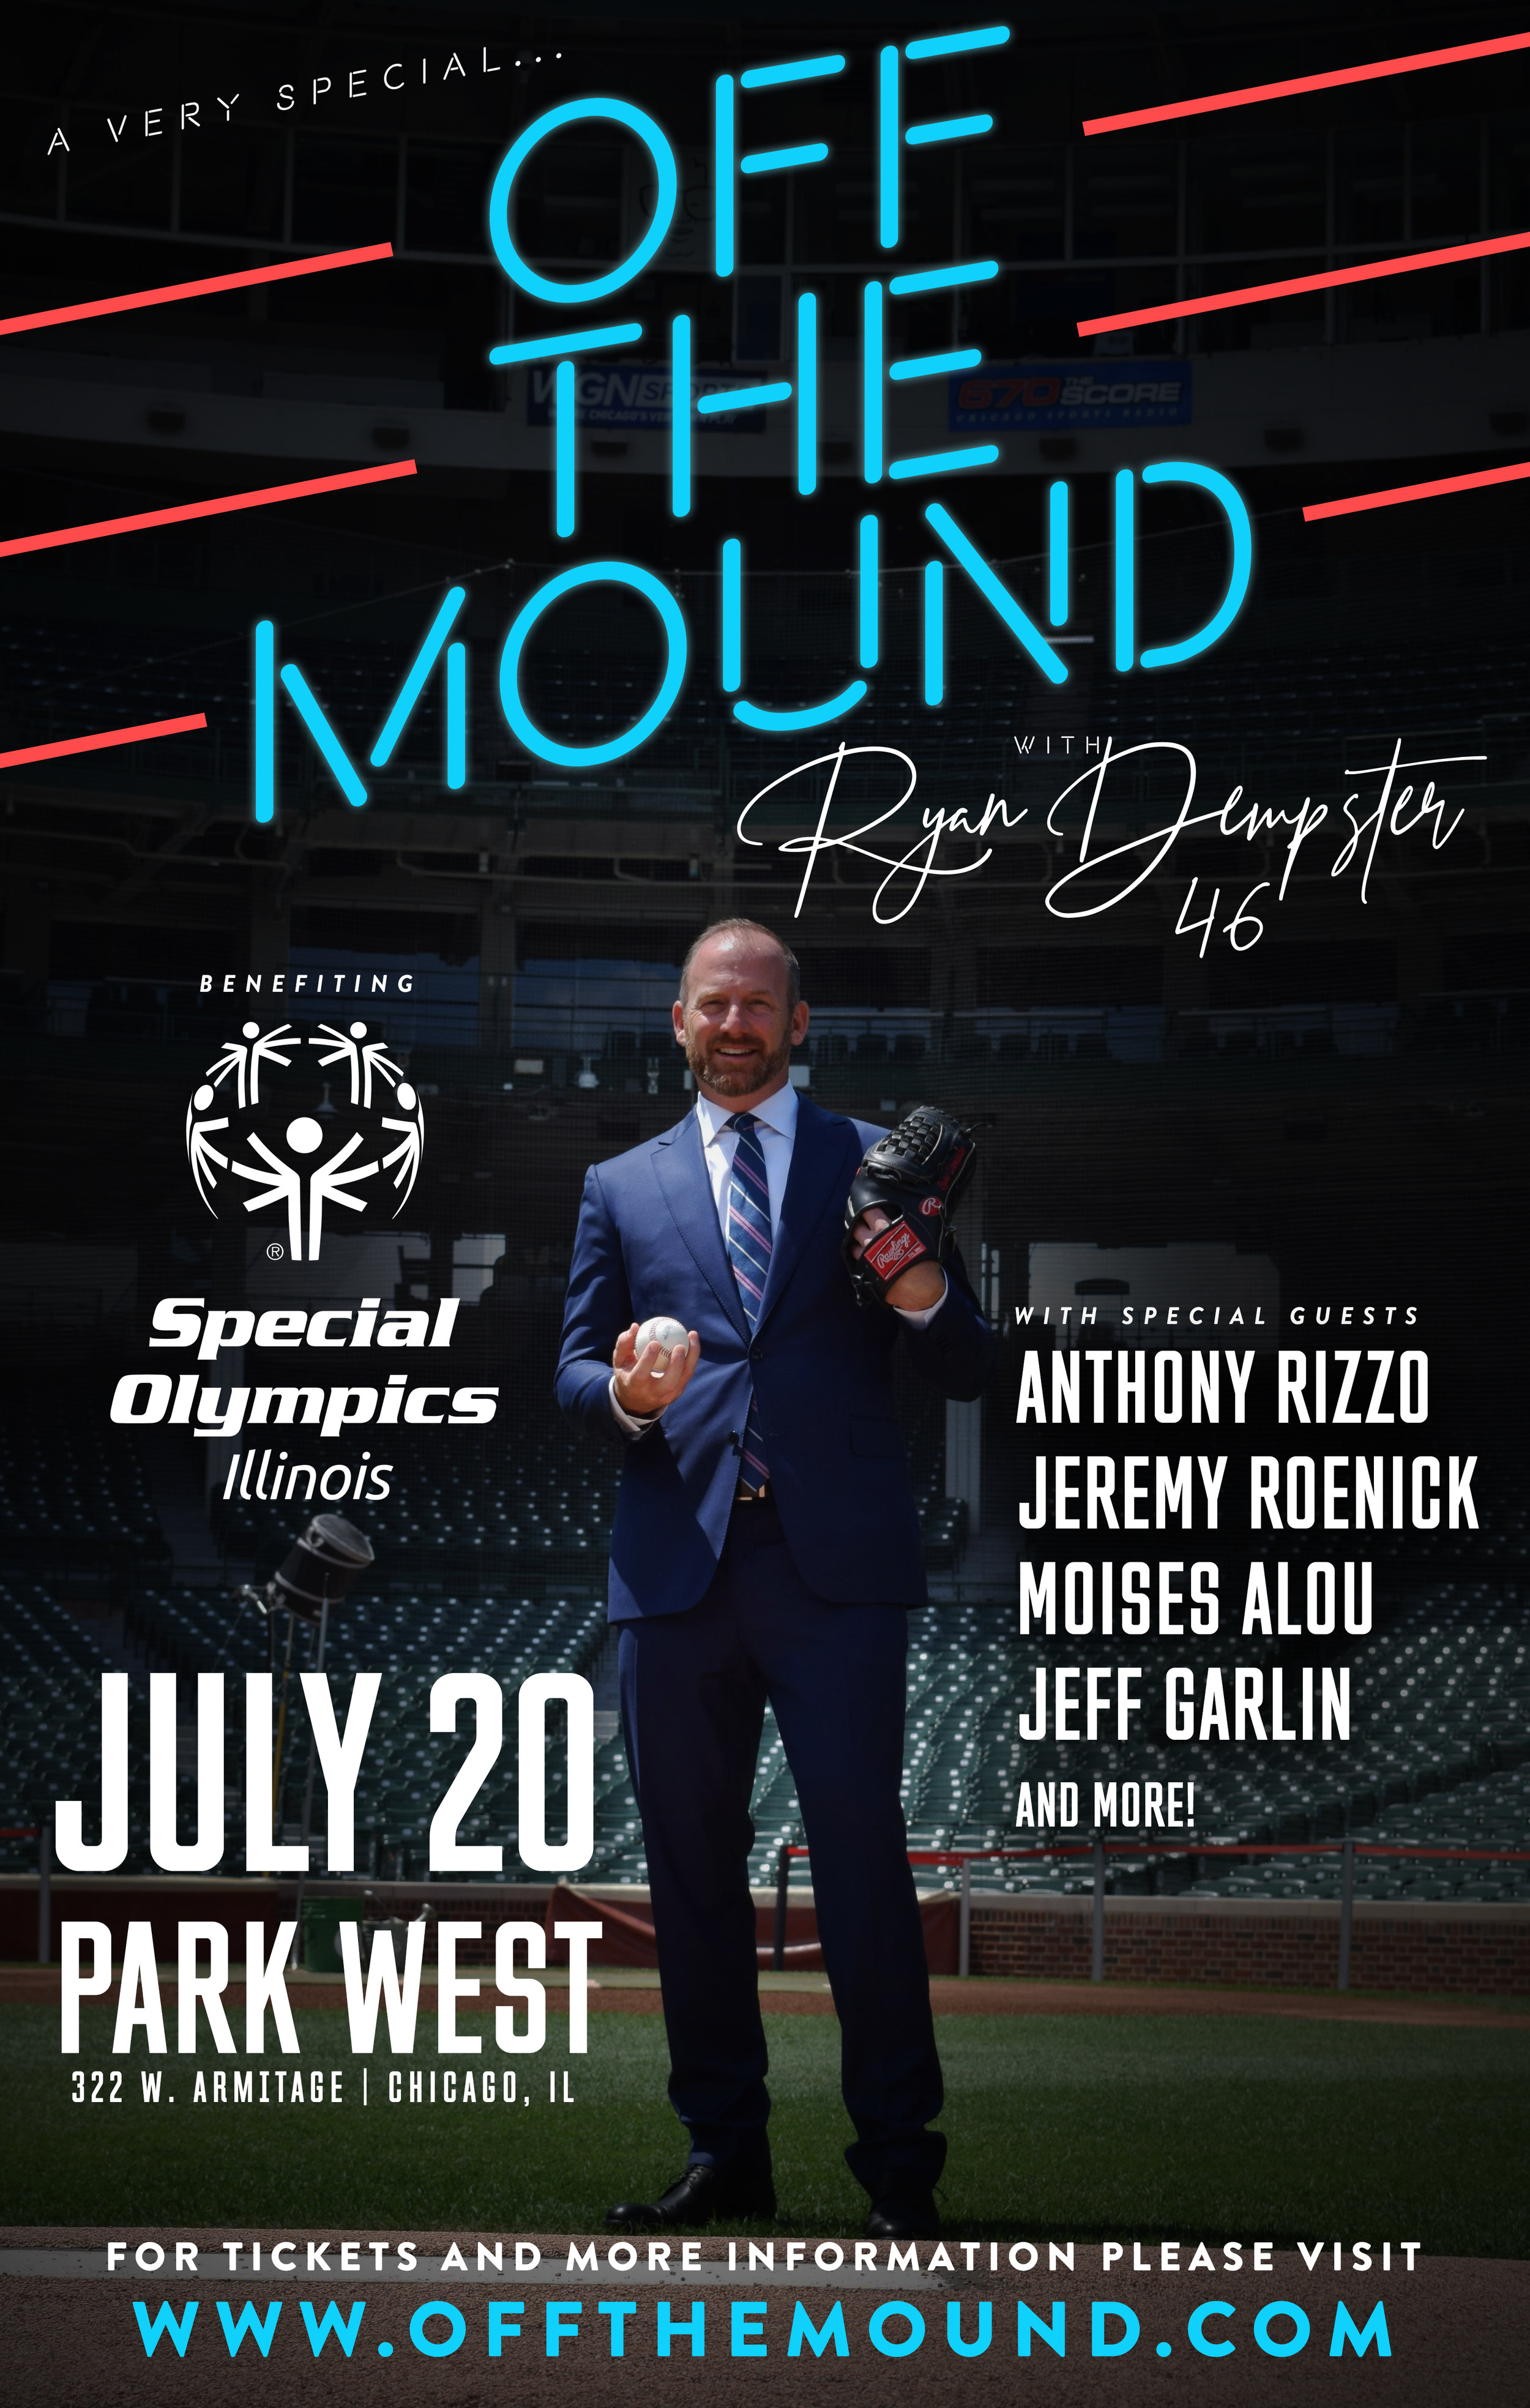 Off The Mound | Poster | 11x17 for Print.jpg